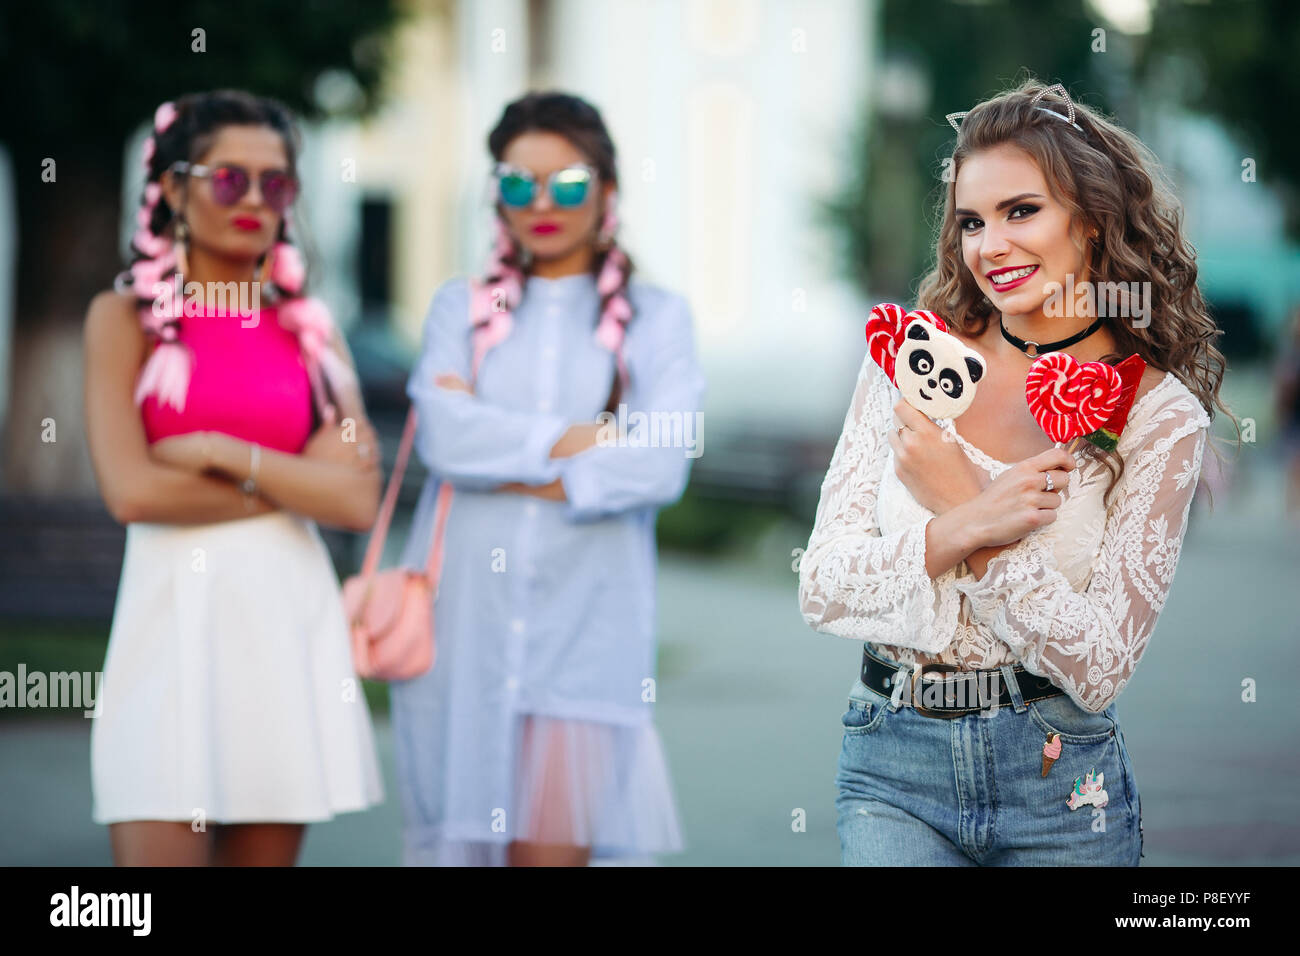 One woman holding colorful candies on stick and smiling, other angry looking. - Stock Image